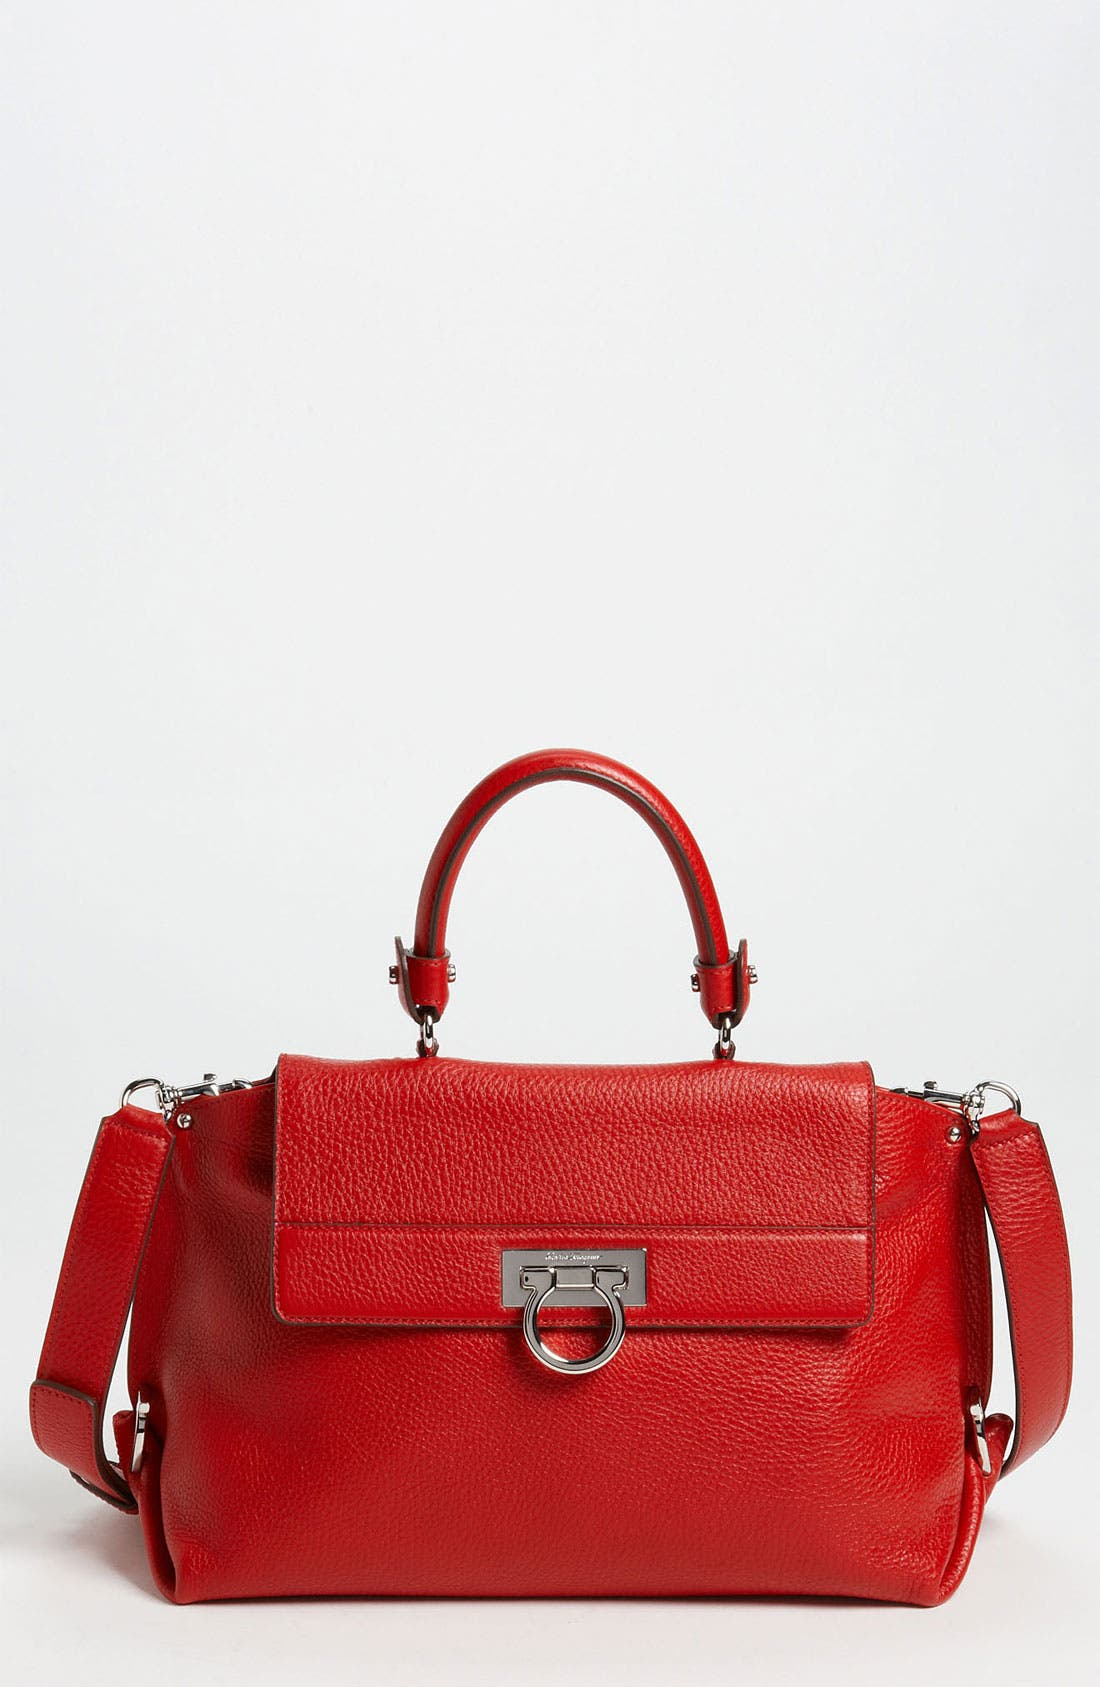 Alternate Image 1 Selected - Salvatore Ferragamo 'Mediterraneo Sofia' Satchel